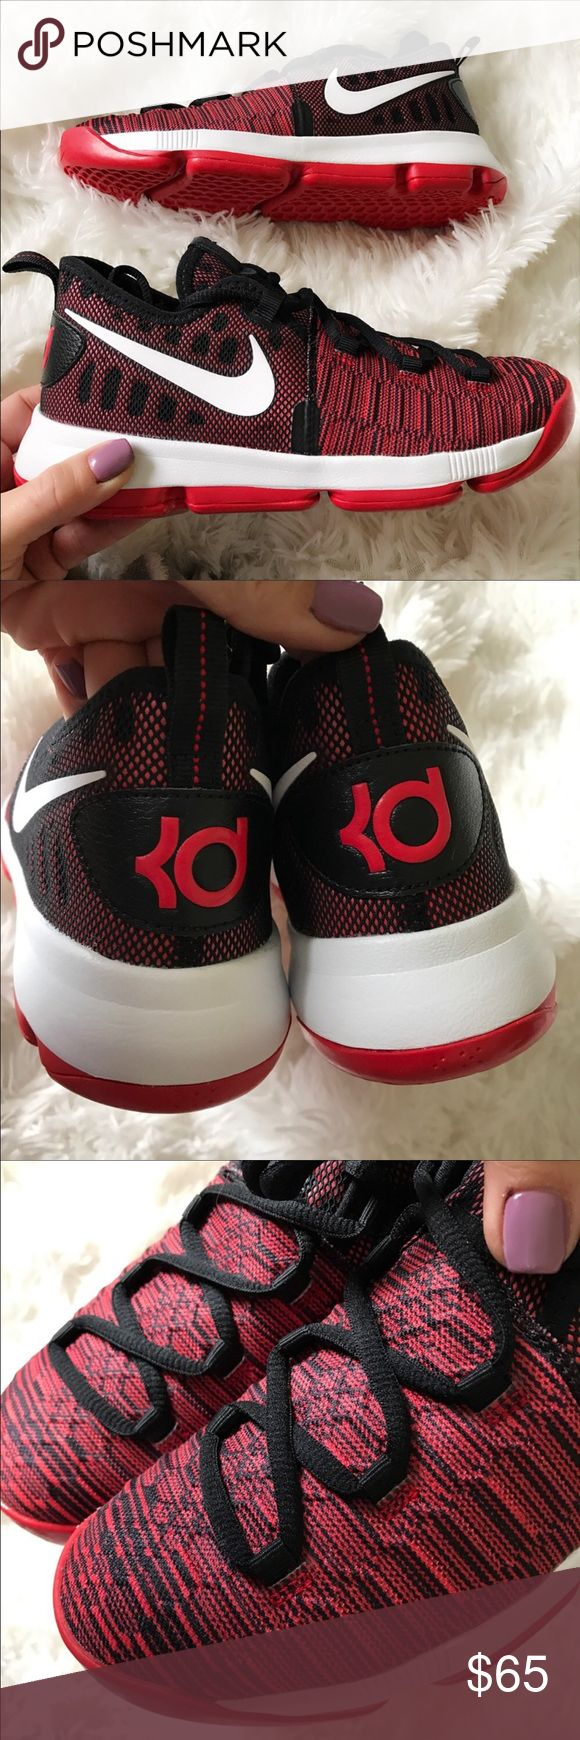 NWOB NIKE KD 8 SIZE 3 YOUTH /KIDS BRAND NEW NIKE KD 8 YOUTH 100% AUTHENTIC.   ONE OF EACH SIZE IS AVAILABLE.   SHIPS SAME OR NEXT DAY FROM MY SMOKE FREE HOME.   REASONABLE OFFERS WILL ONLY BE CONSIDERED THROUGH THE OFFER BUTTON. ANY OFFERS IN COMMENTS WILL BE IGNORED.   BUNDLE DISCOUNT SUBJECT TO MY APPROVAL. ✨   TRUSTED RELIABLE SELLER. ALL PRODUCT IS 100% AUTHENTIC & DIRECT FROM NIKE Nike Shoes Sneakers